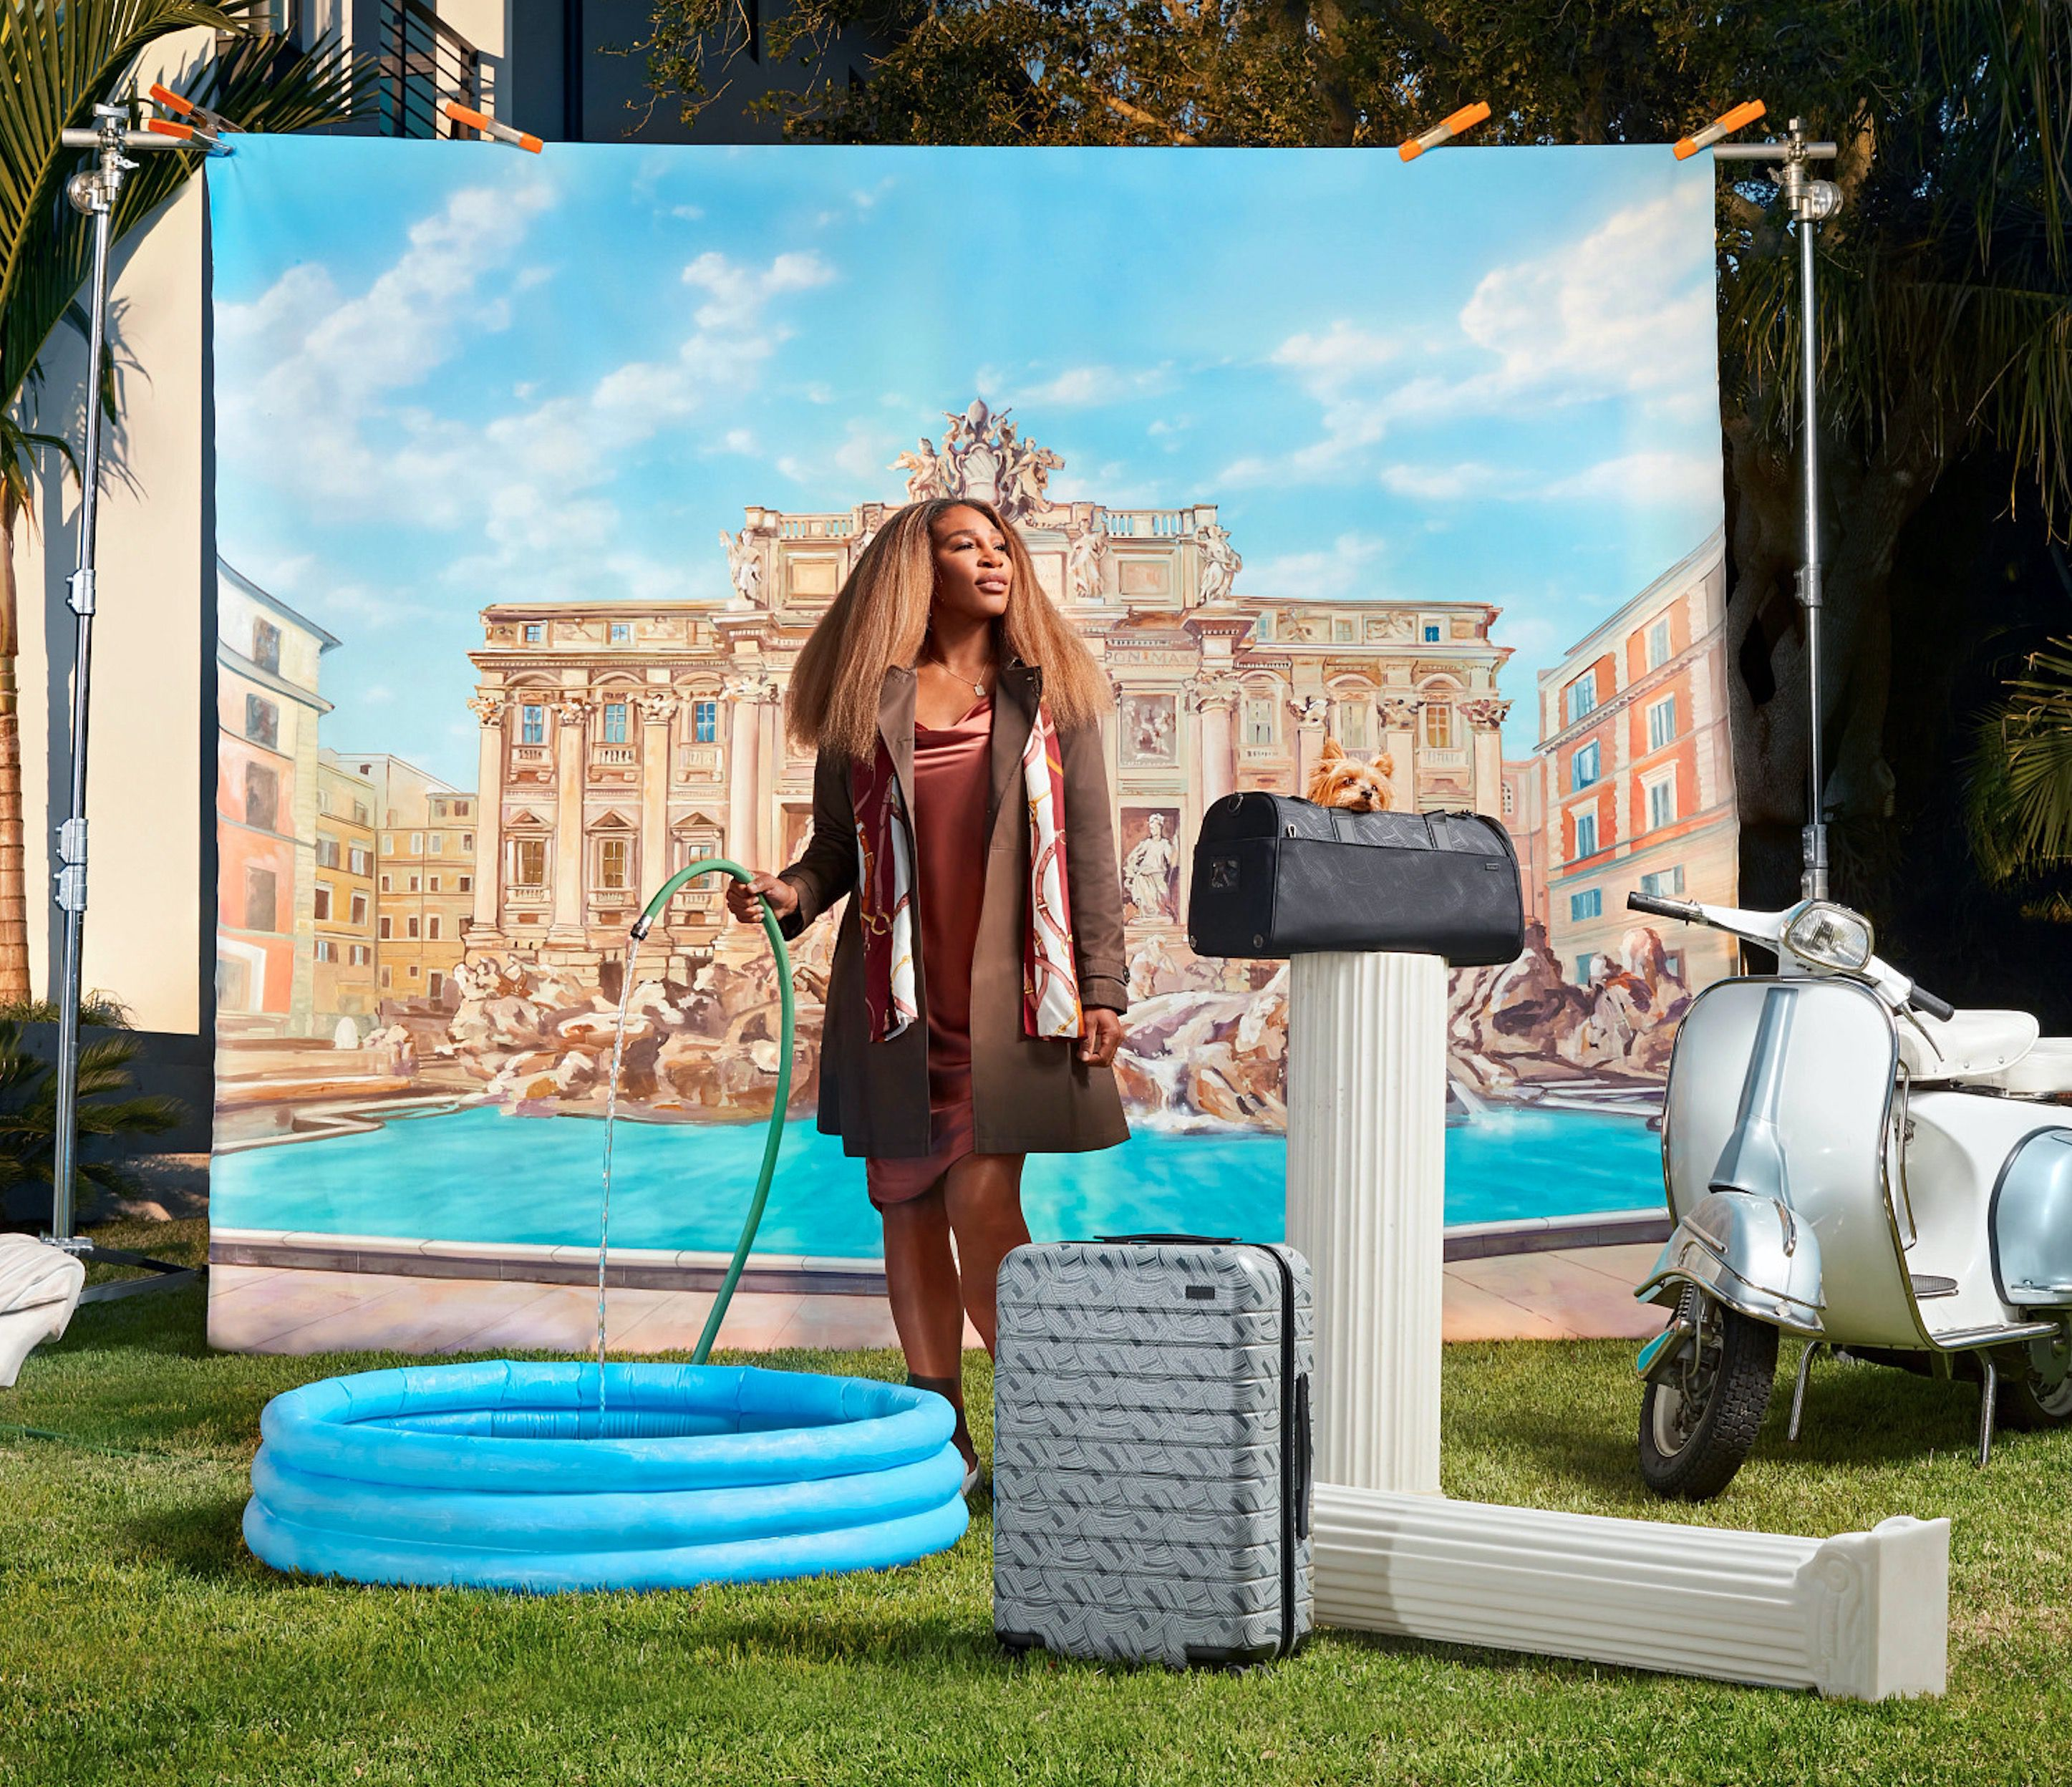 Serena Williams and Away's Latest Luggage Collection Is Here To Help You Travel in Style